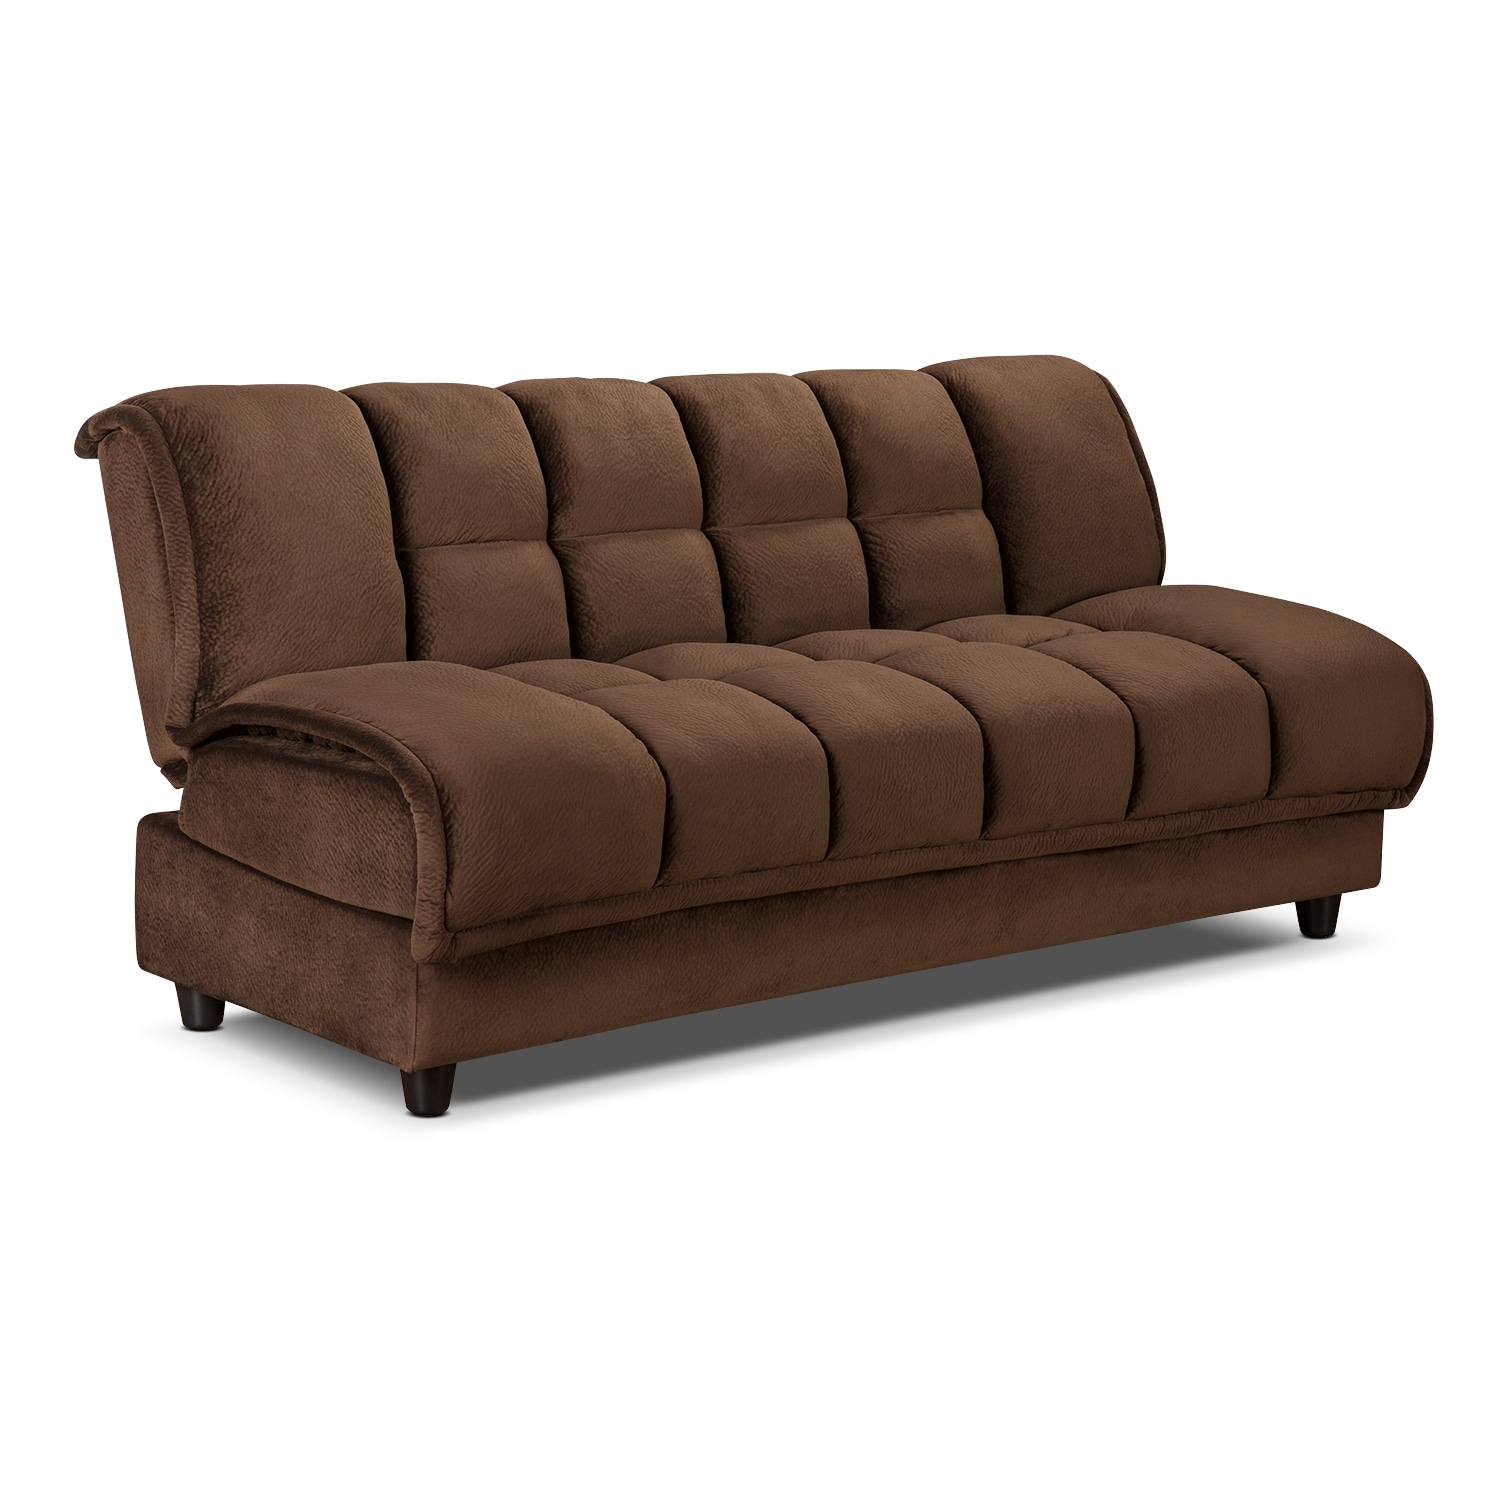 Living Room Furniture - Bennett Futon Sofa Bed